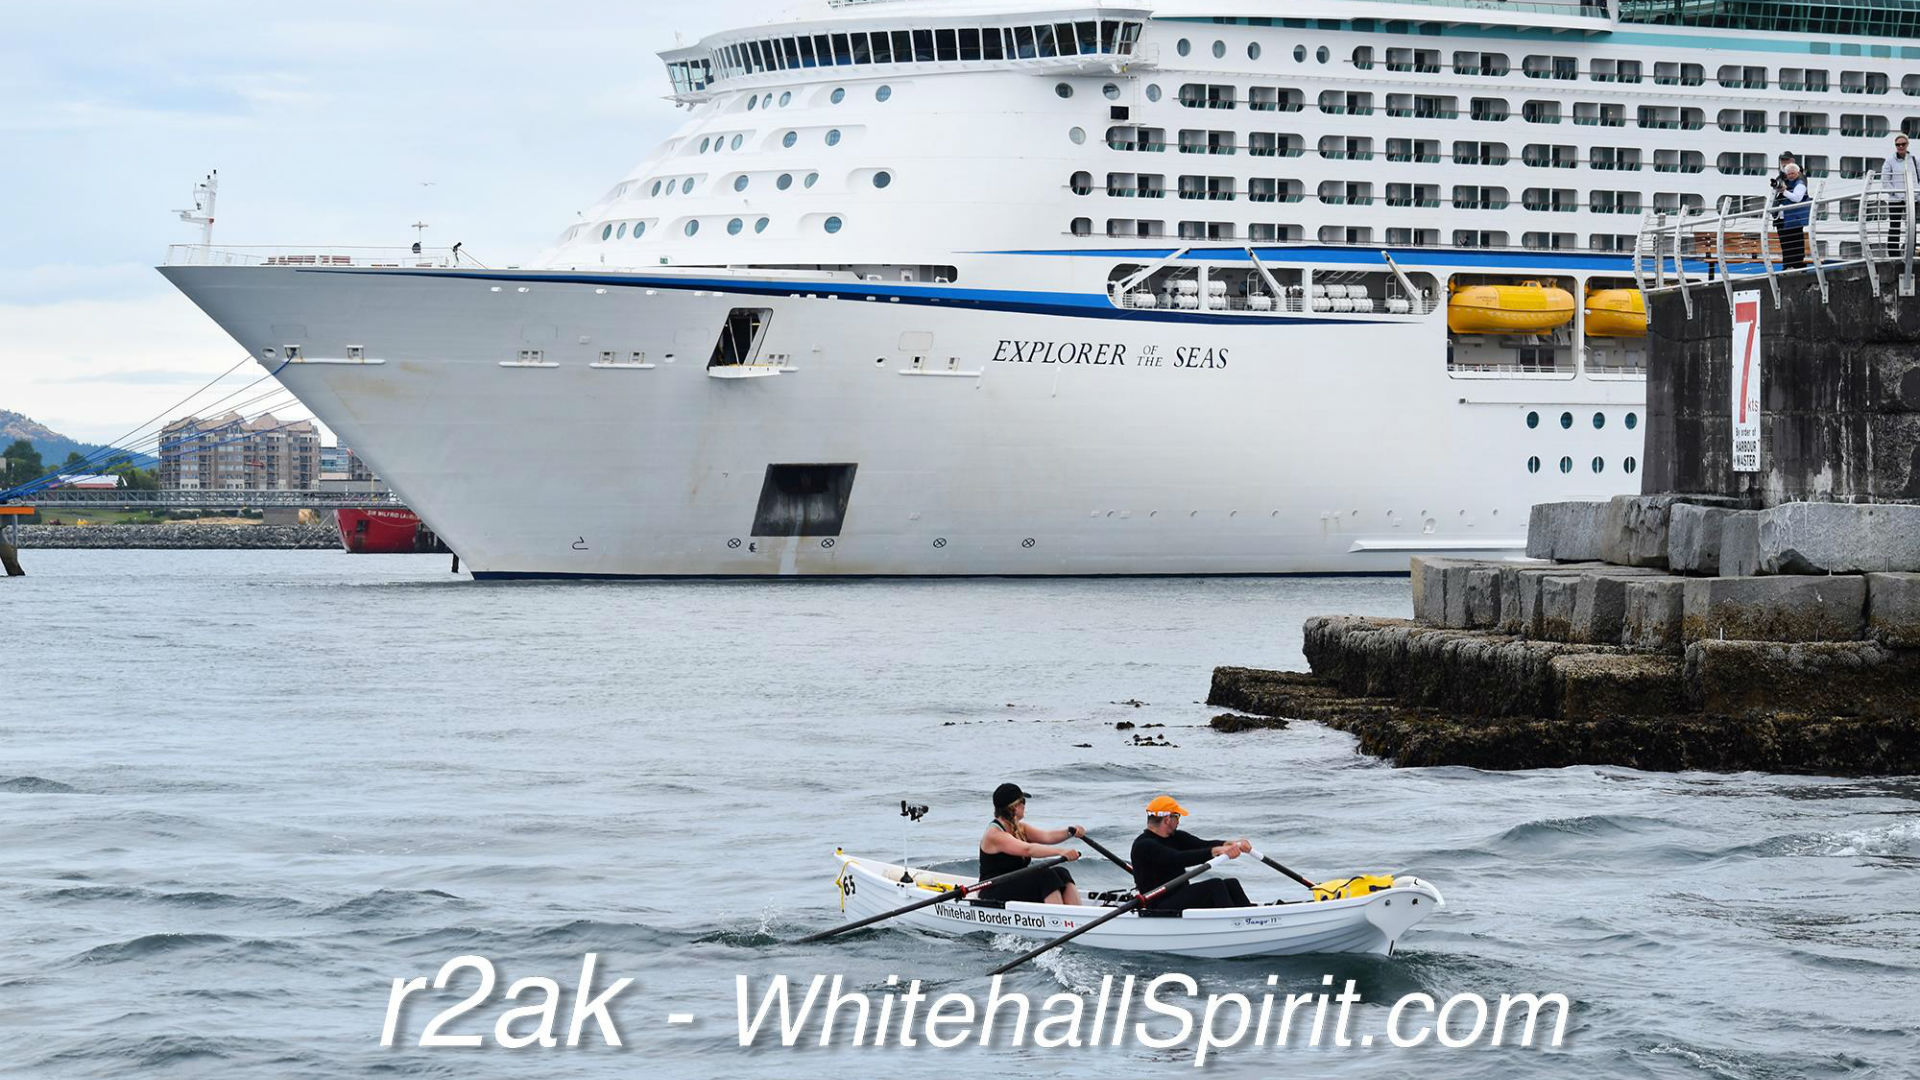 Whitehall-Rowing-and-Sail-Victoria-R2AK-Rowboat-Diana-Lesieur-Race-to-Alaska